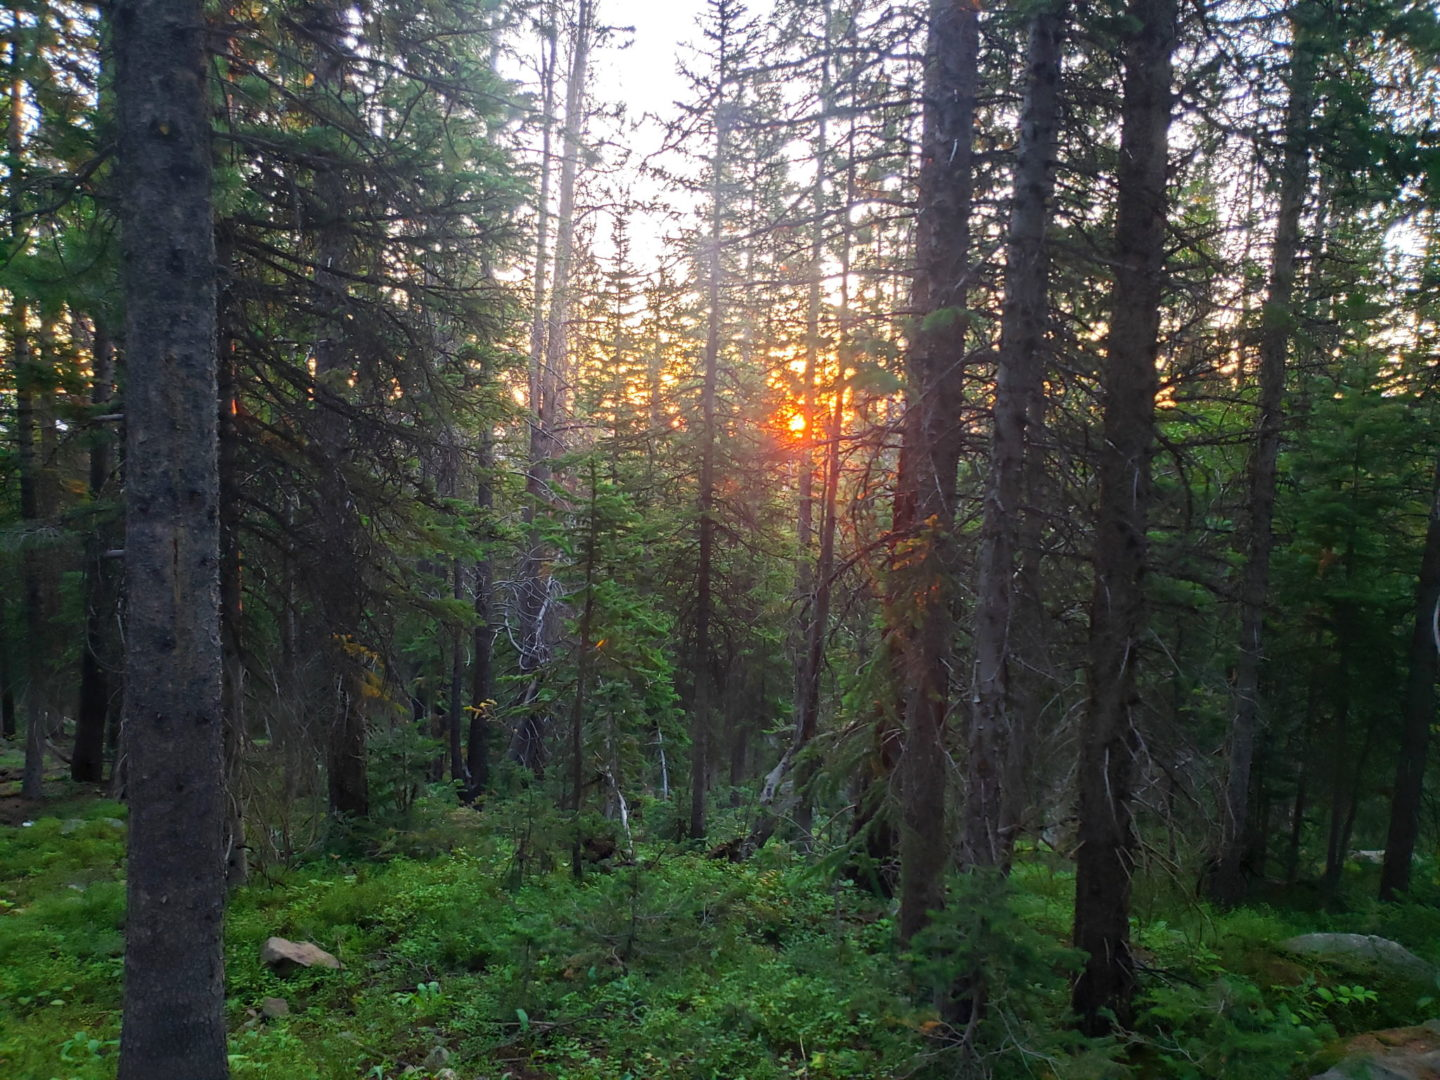 Sunrise through the dense forest